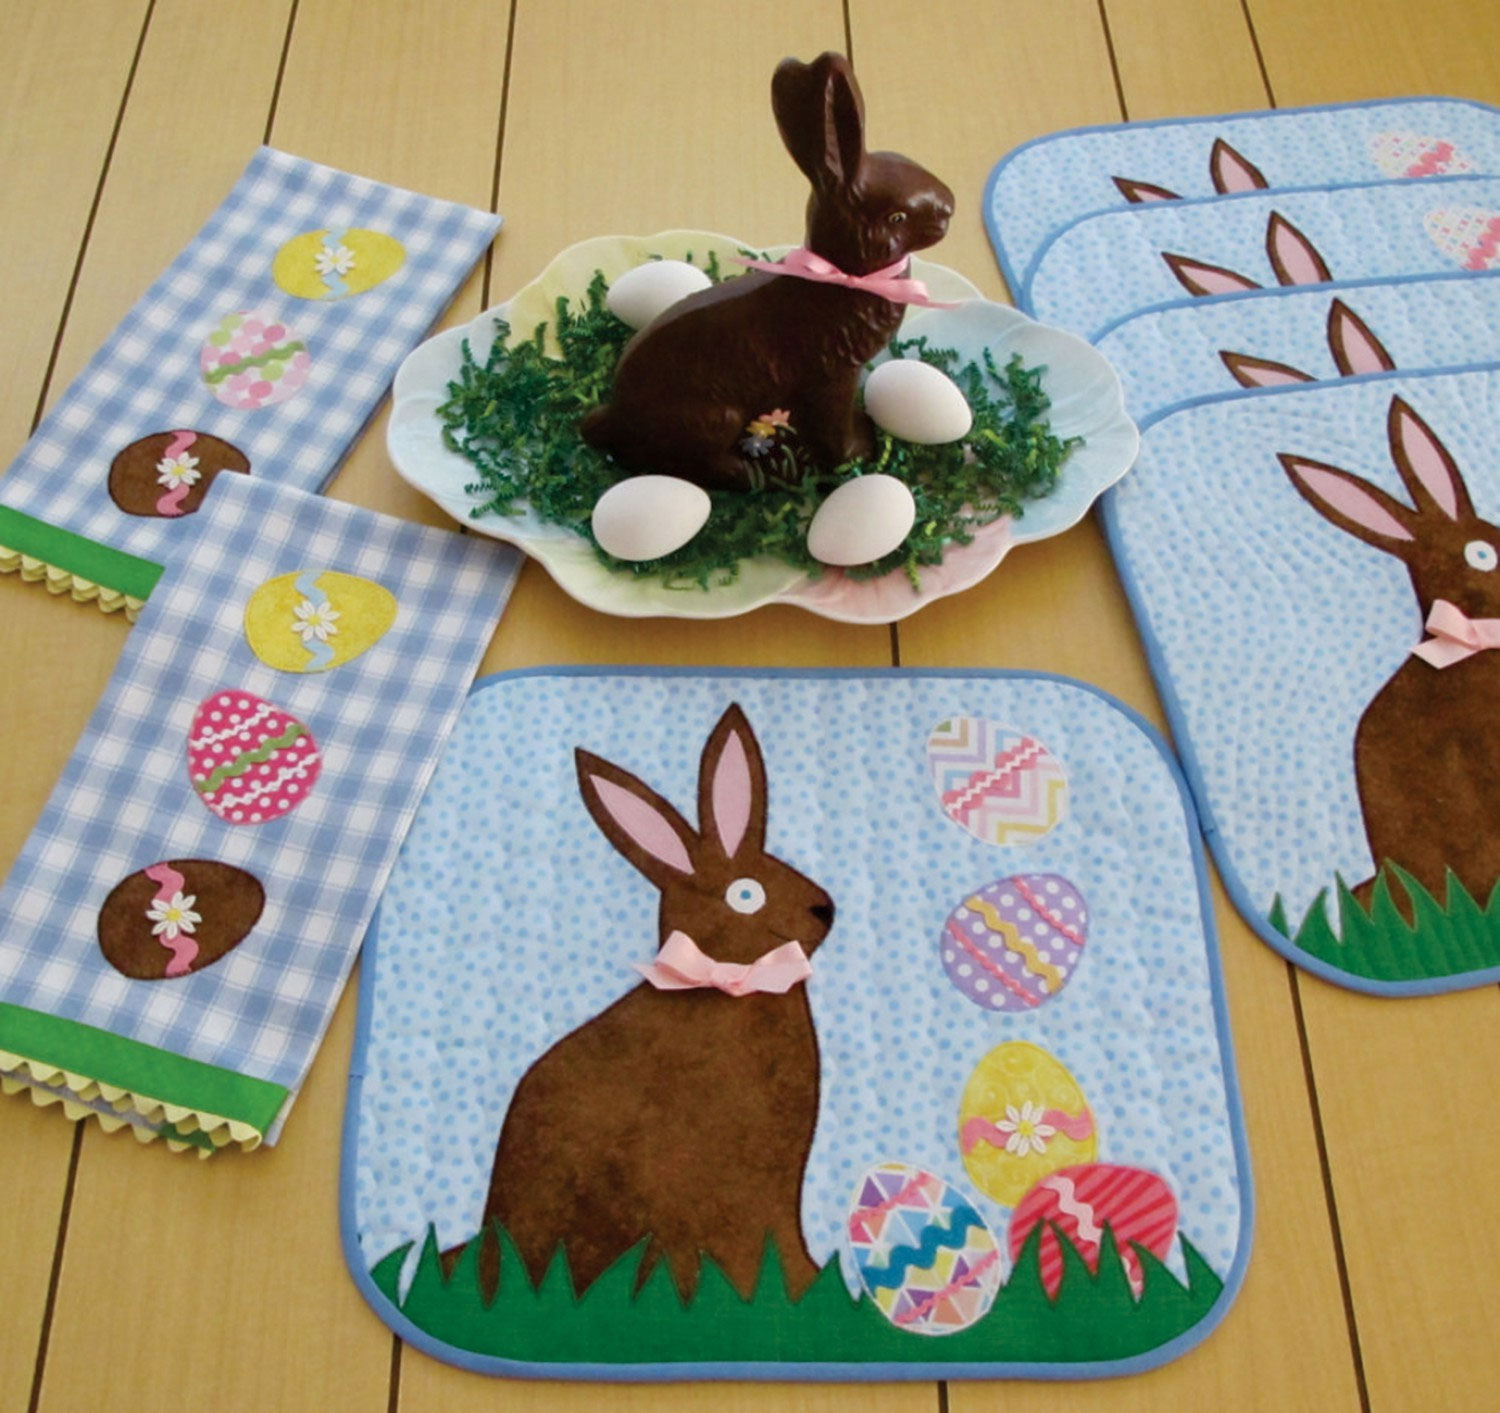 Easter-Egg-Hunt-sewing-pattern-Susie-C-Shore-1